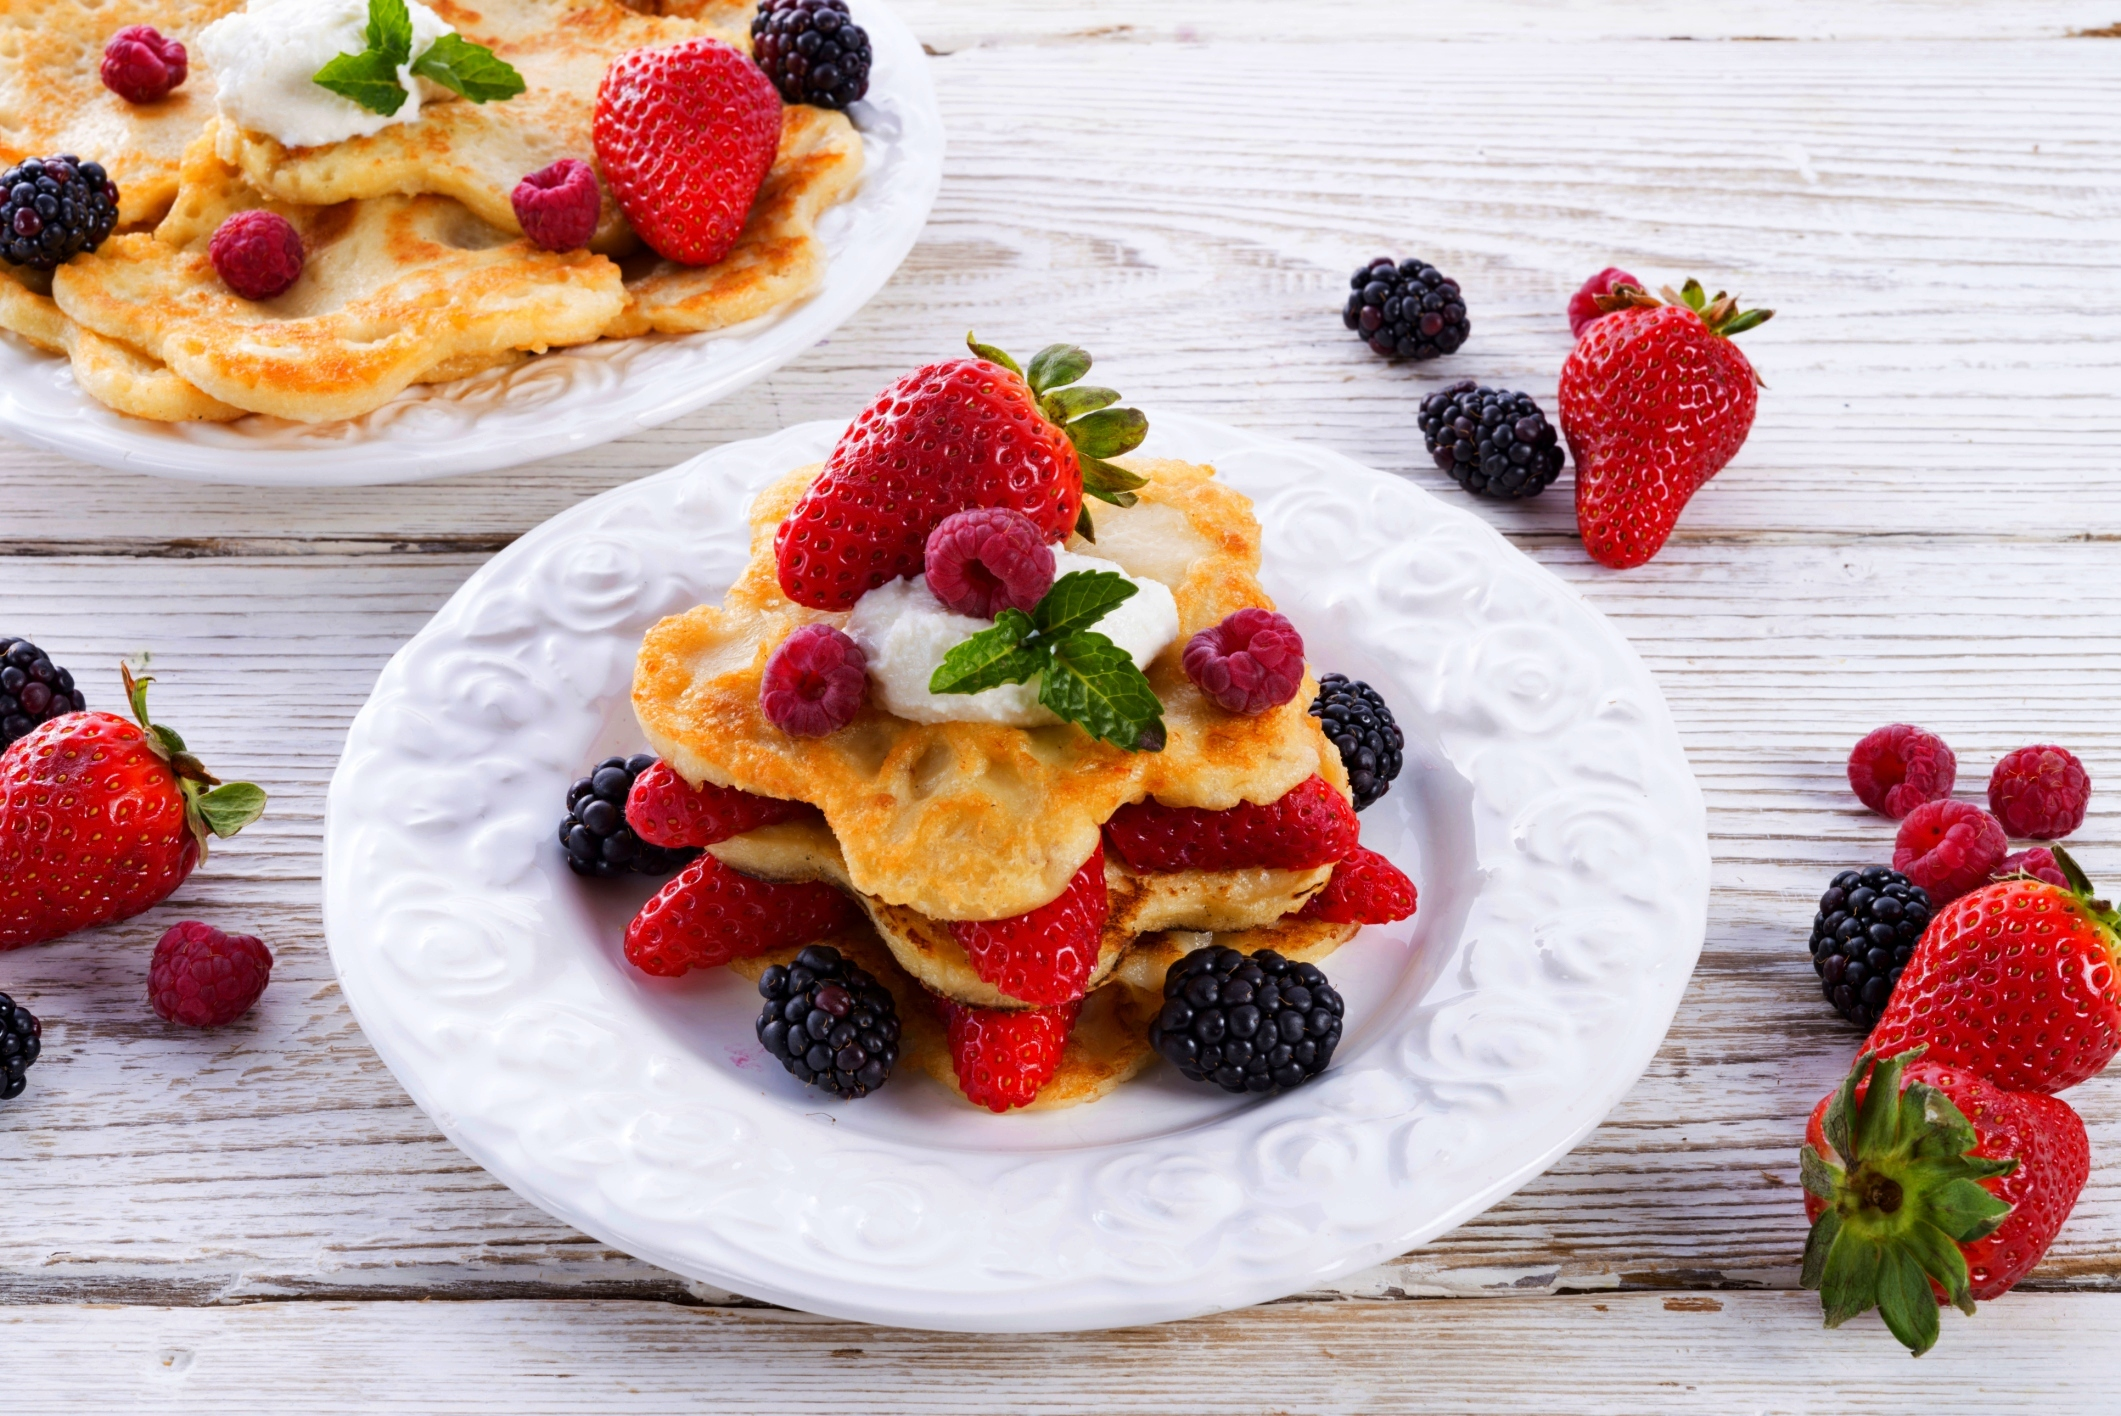 pancakes with strawberries - HD1920×1282